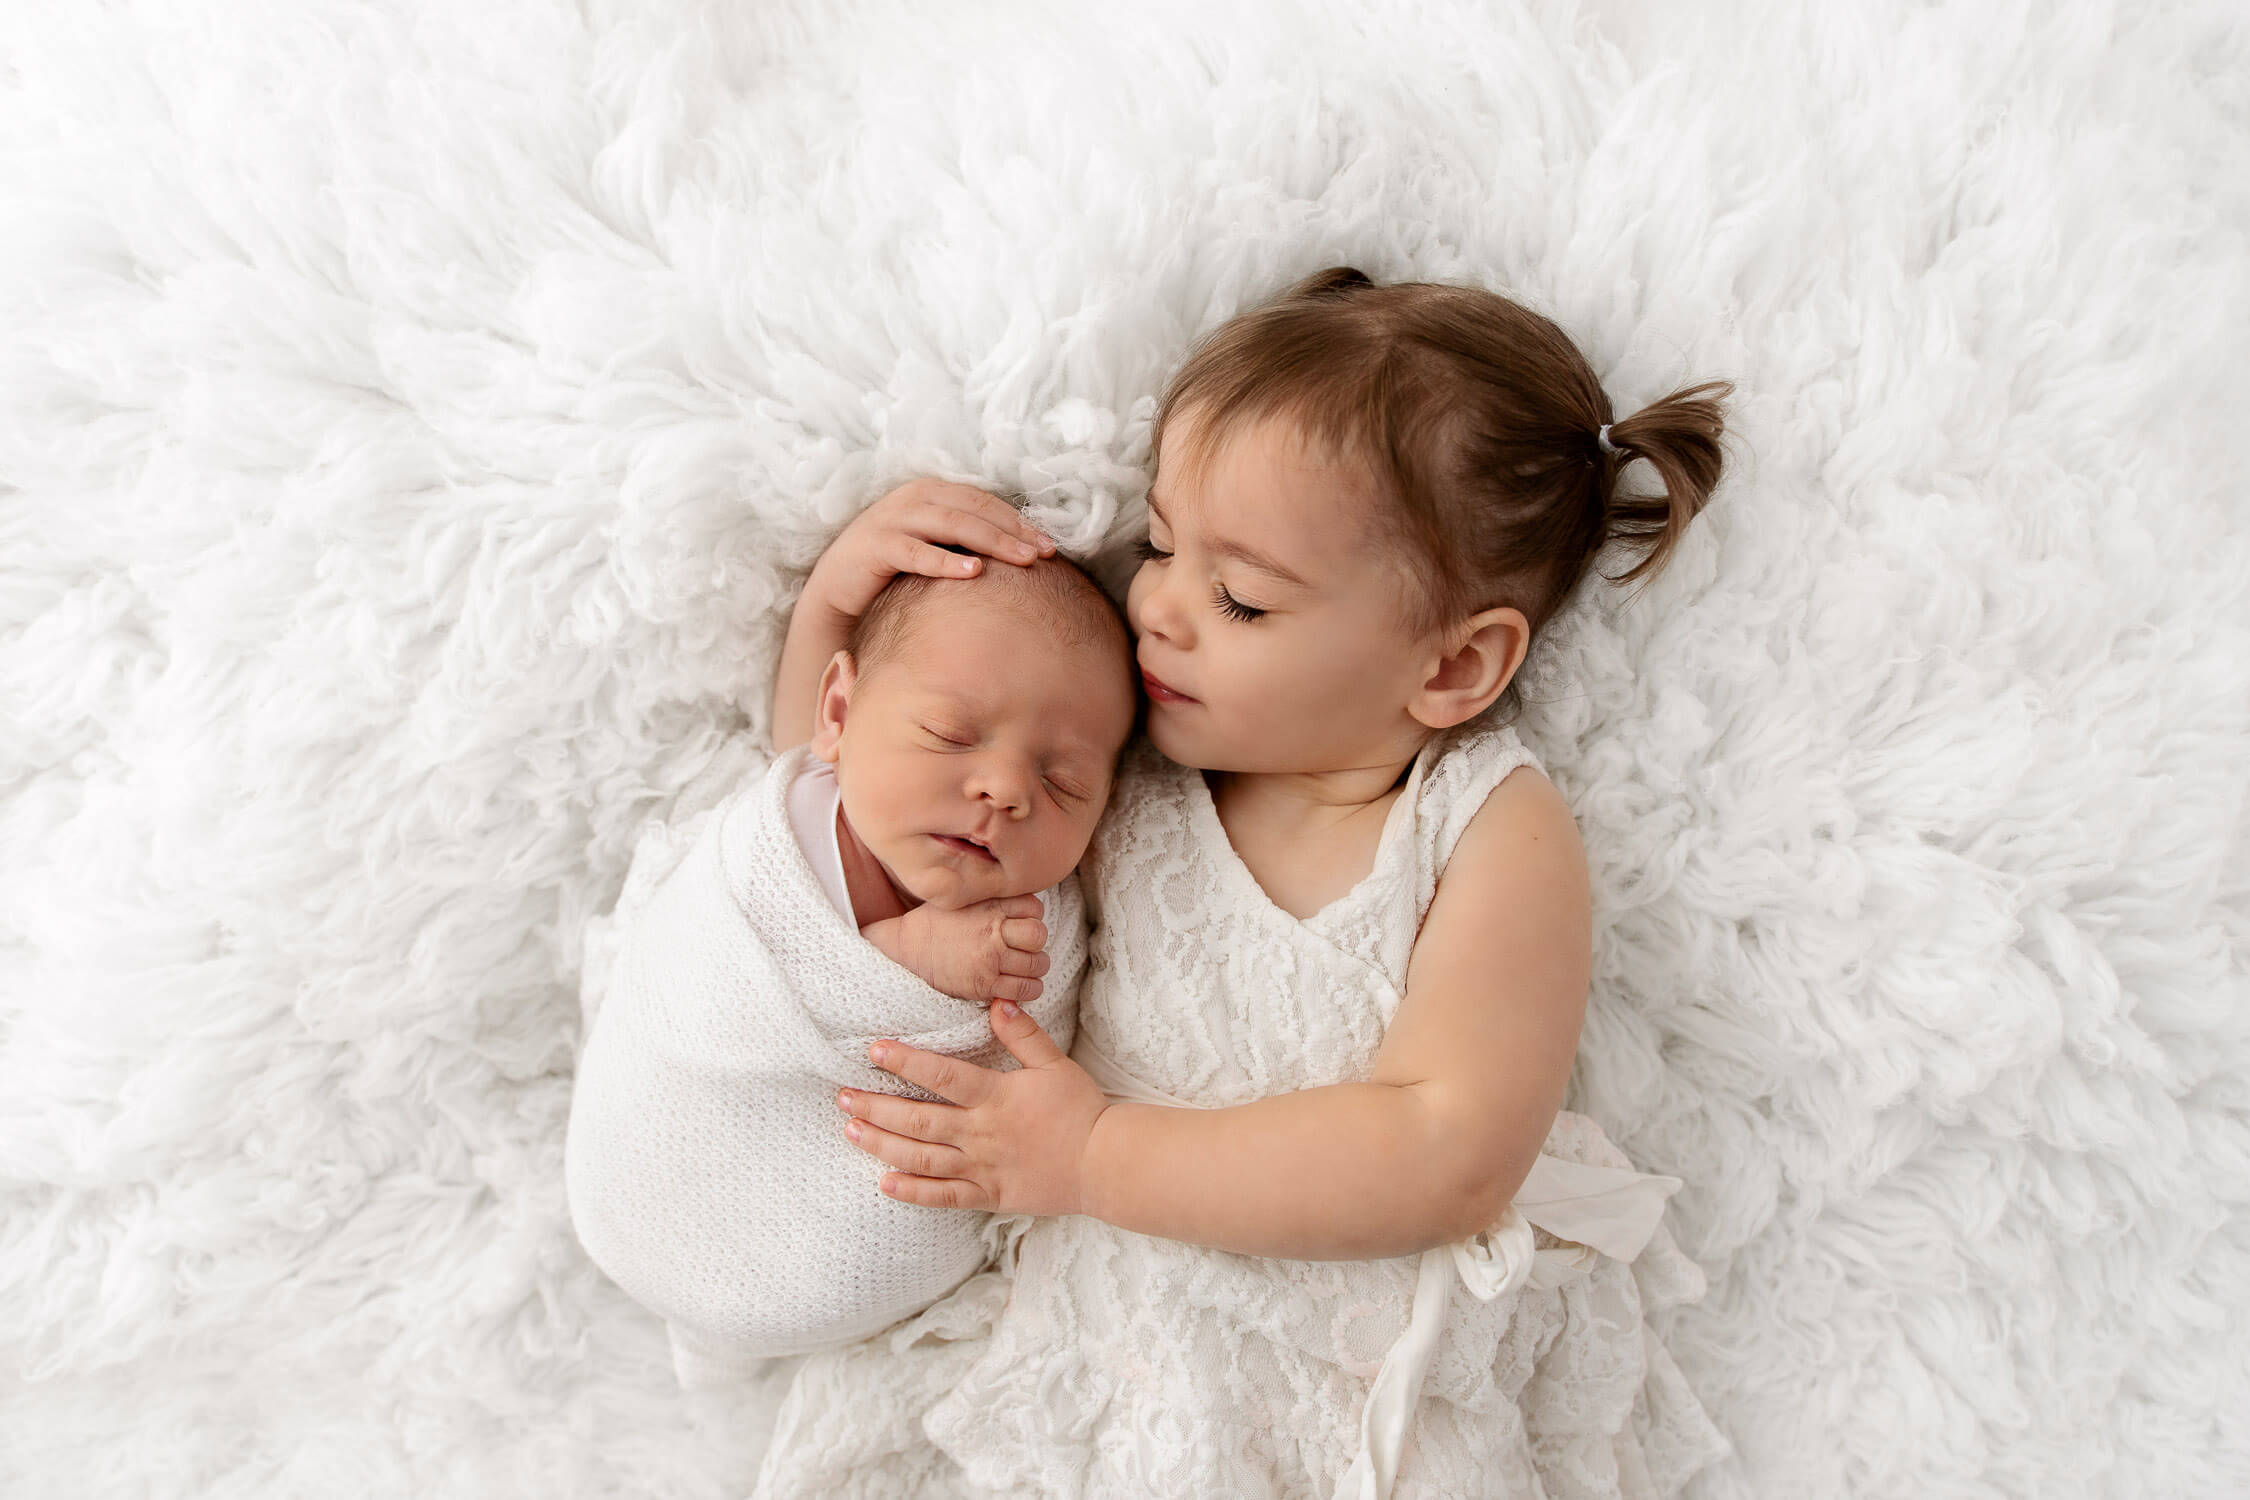 toddler sister with eyes closed holding sleeping baby brother on white fur